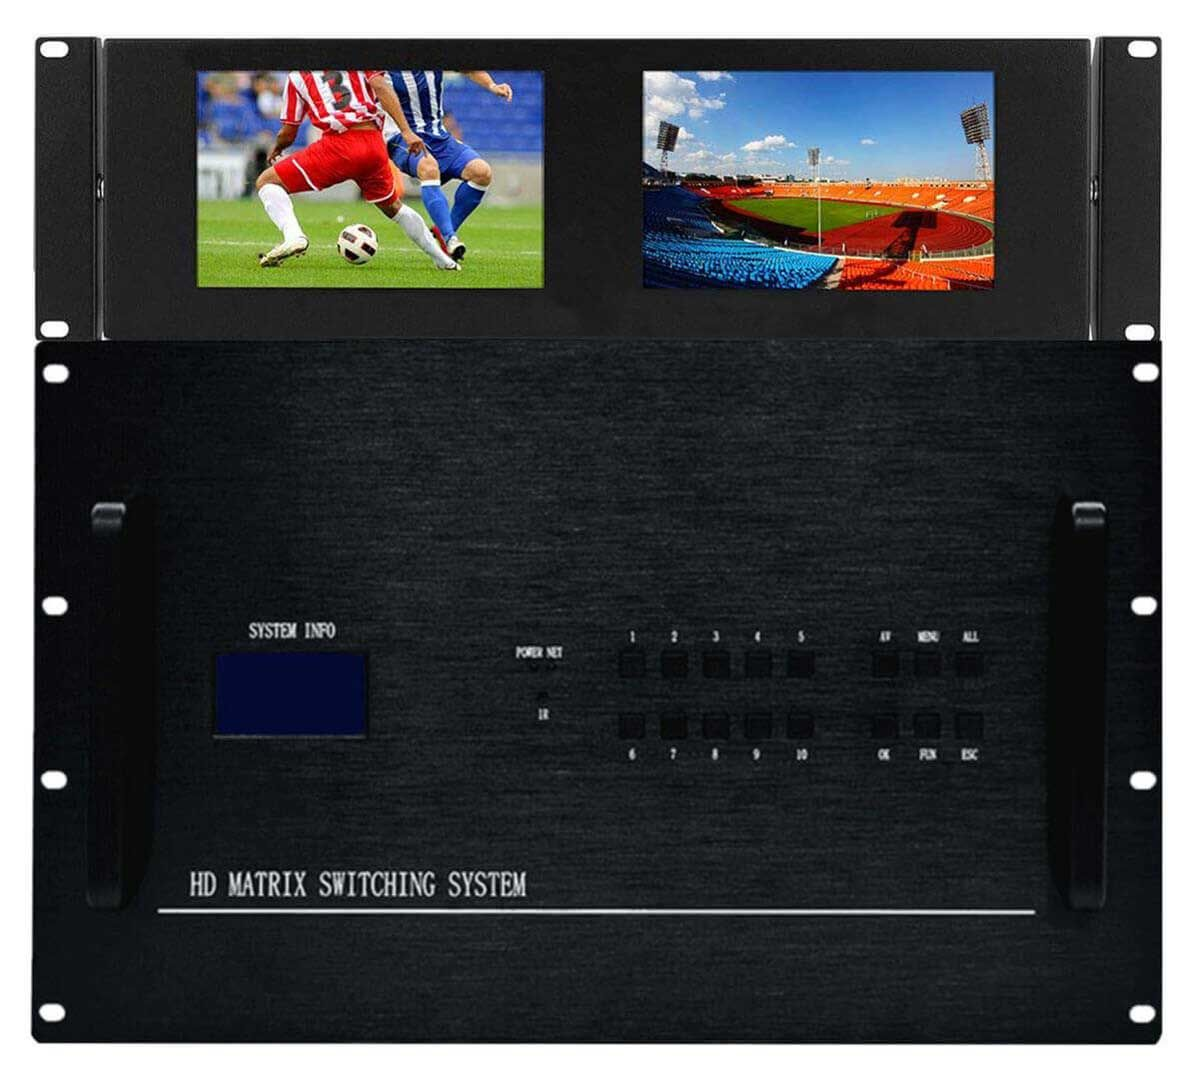 4K 8x32 HDMI Matrix HDBaseT Switch with 32-CAT5 Extenders